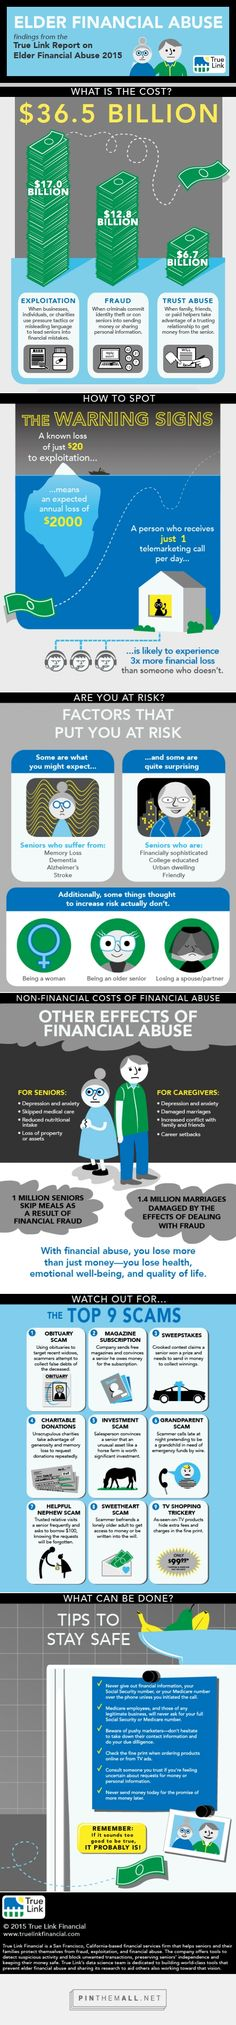 THE TRUE LINK REPORT ON ELDER FINANCIAL ABUSE 2015 - created via…